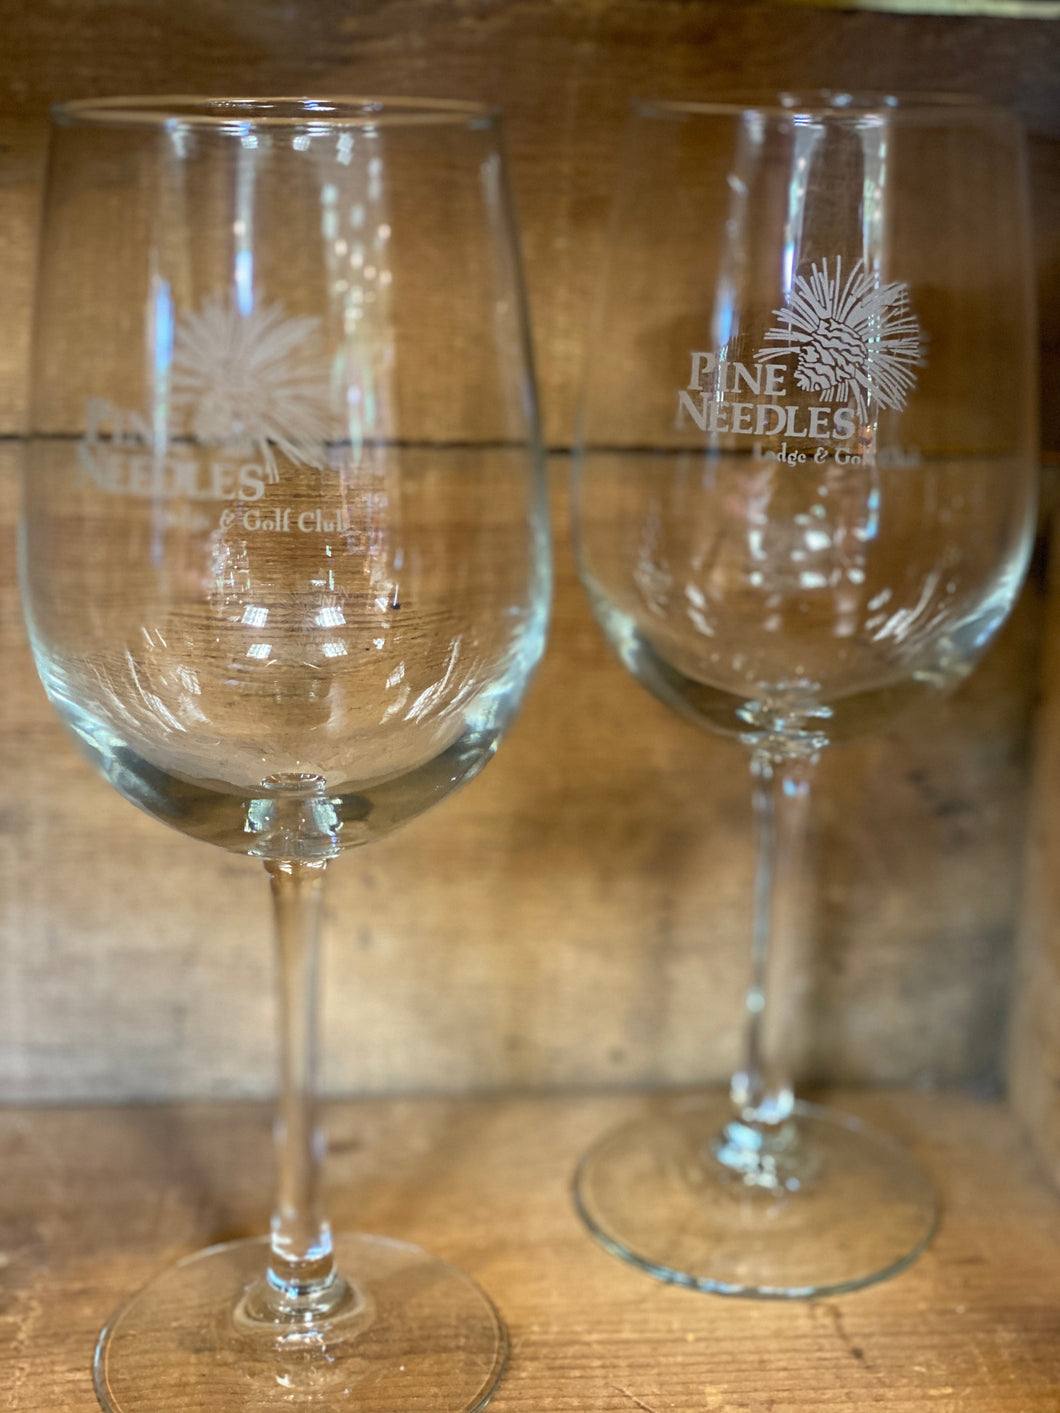 Pine Needles Wine Glass